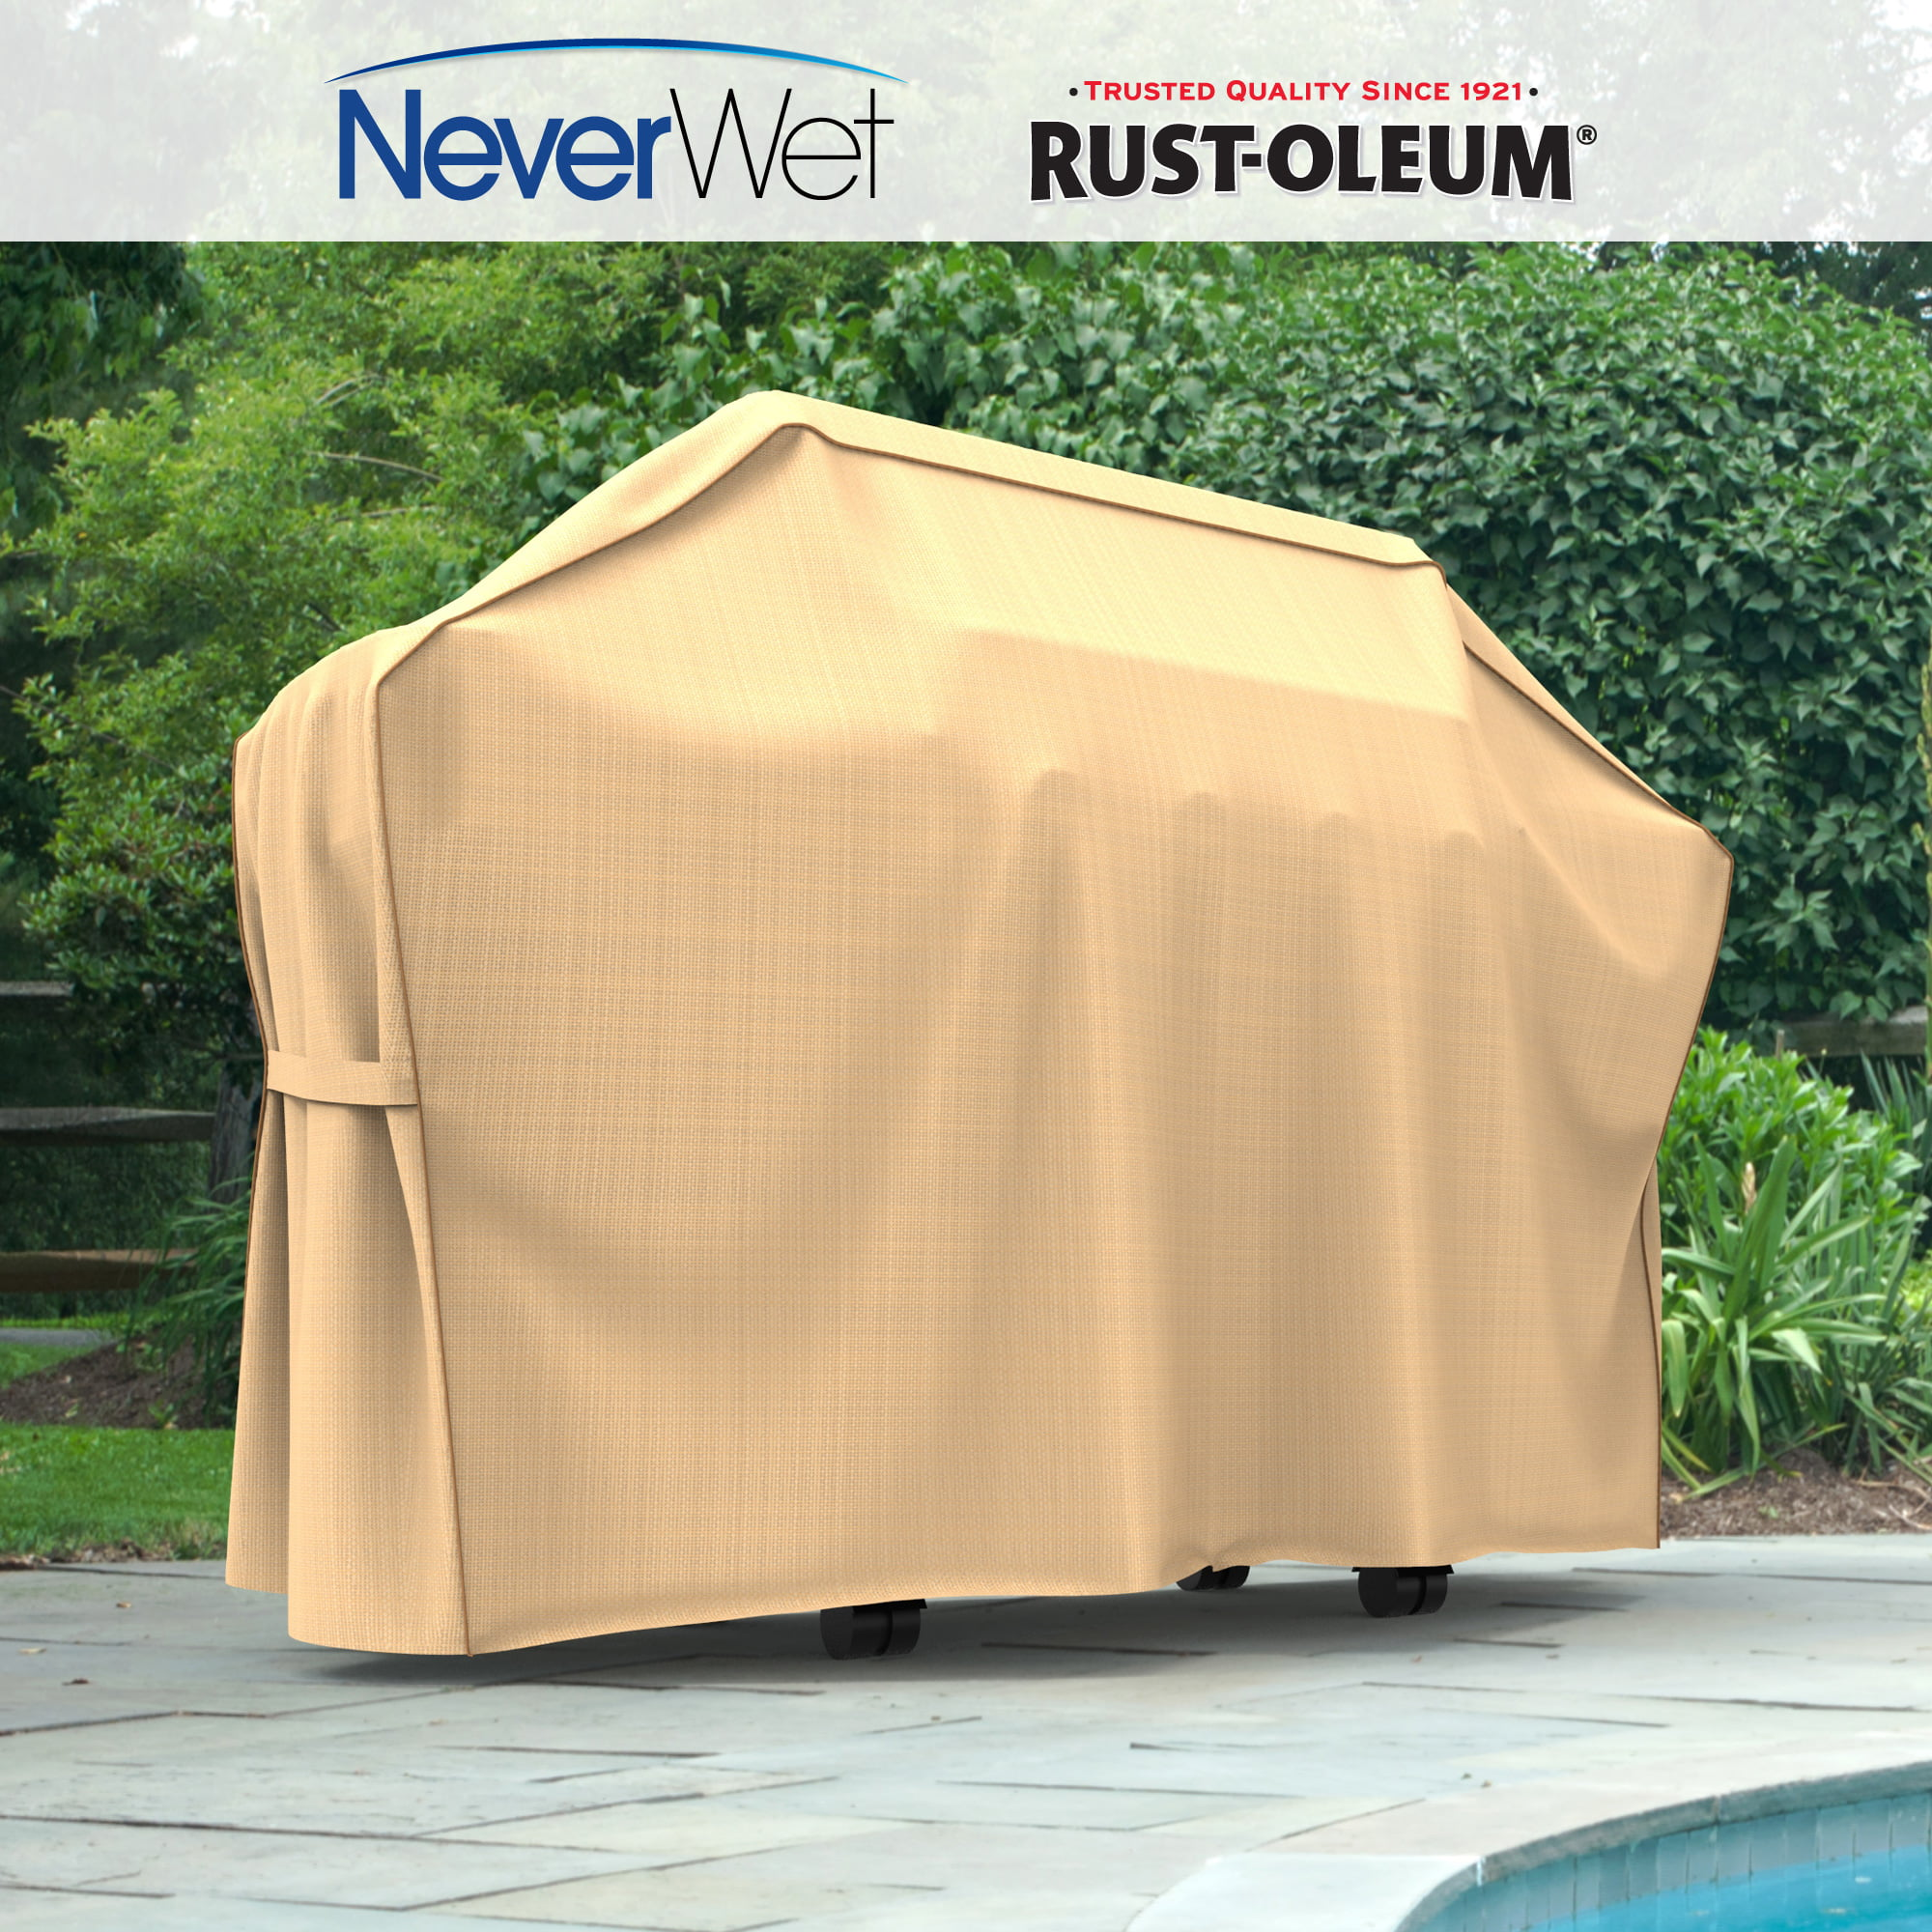 Rust-Oleum NeverWet Grill Covers | Waterproof | Breathable - Walmart.com : neverwet on tent - memphite.com